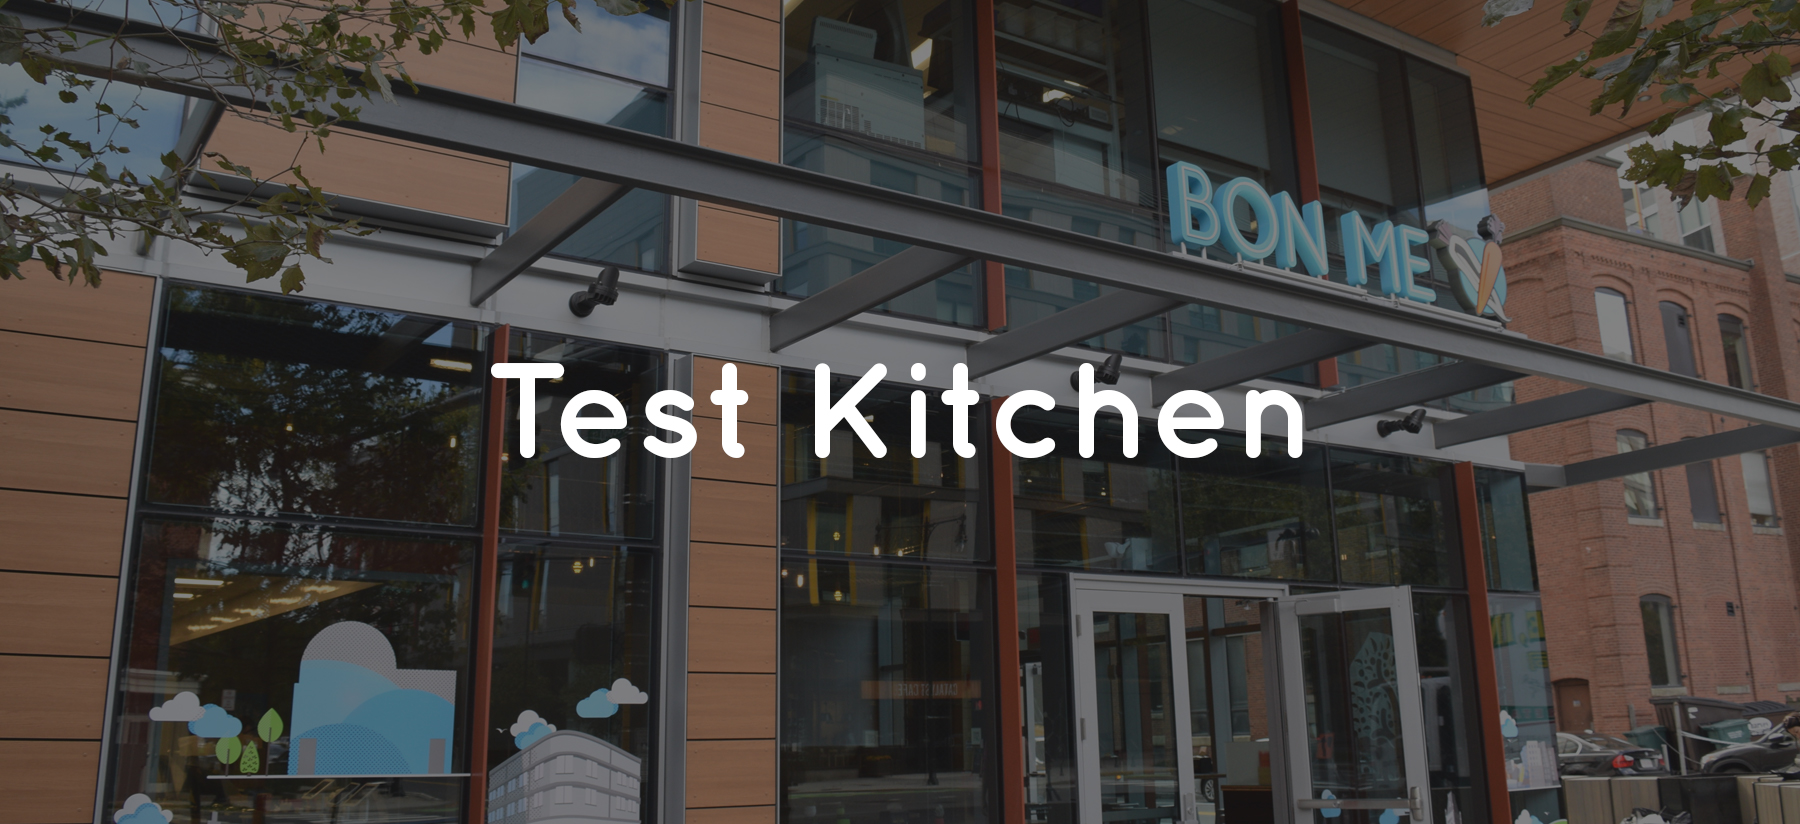 TEST KITCHEN 2.jpg